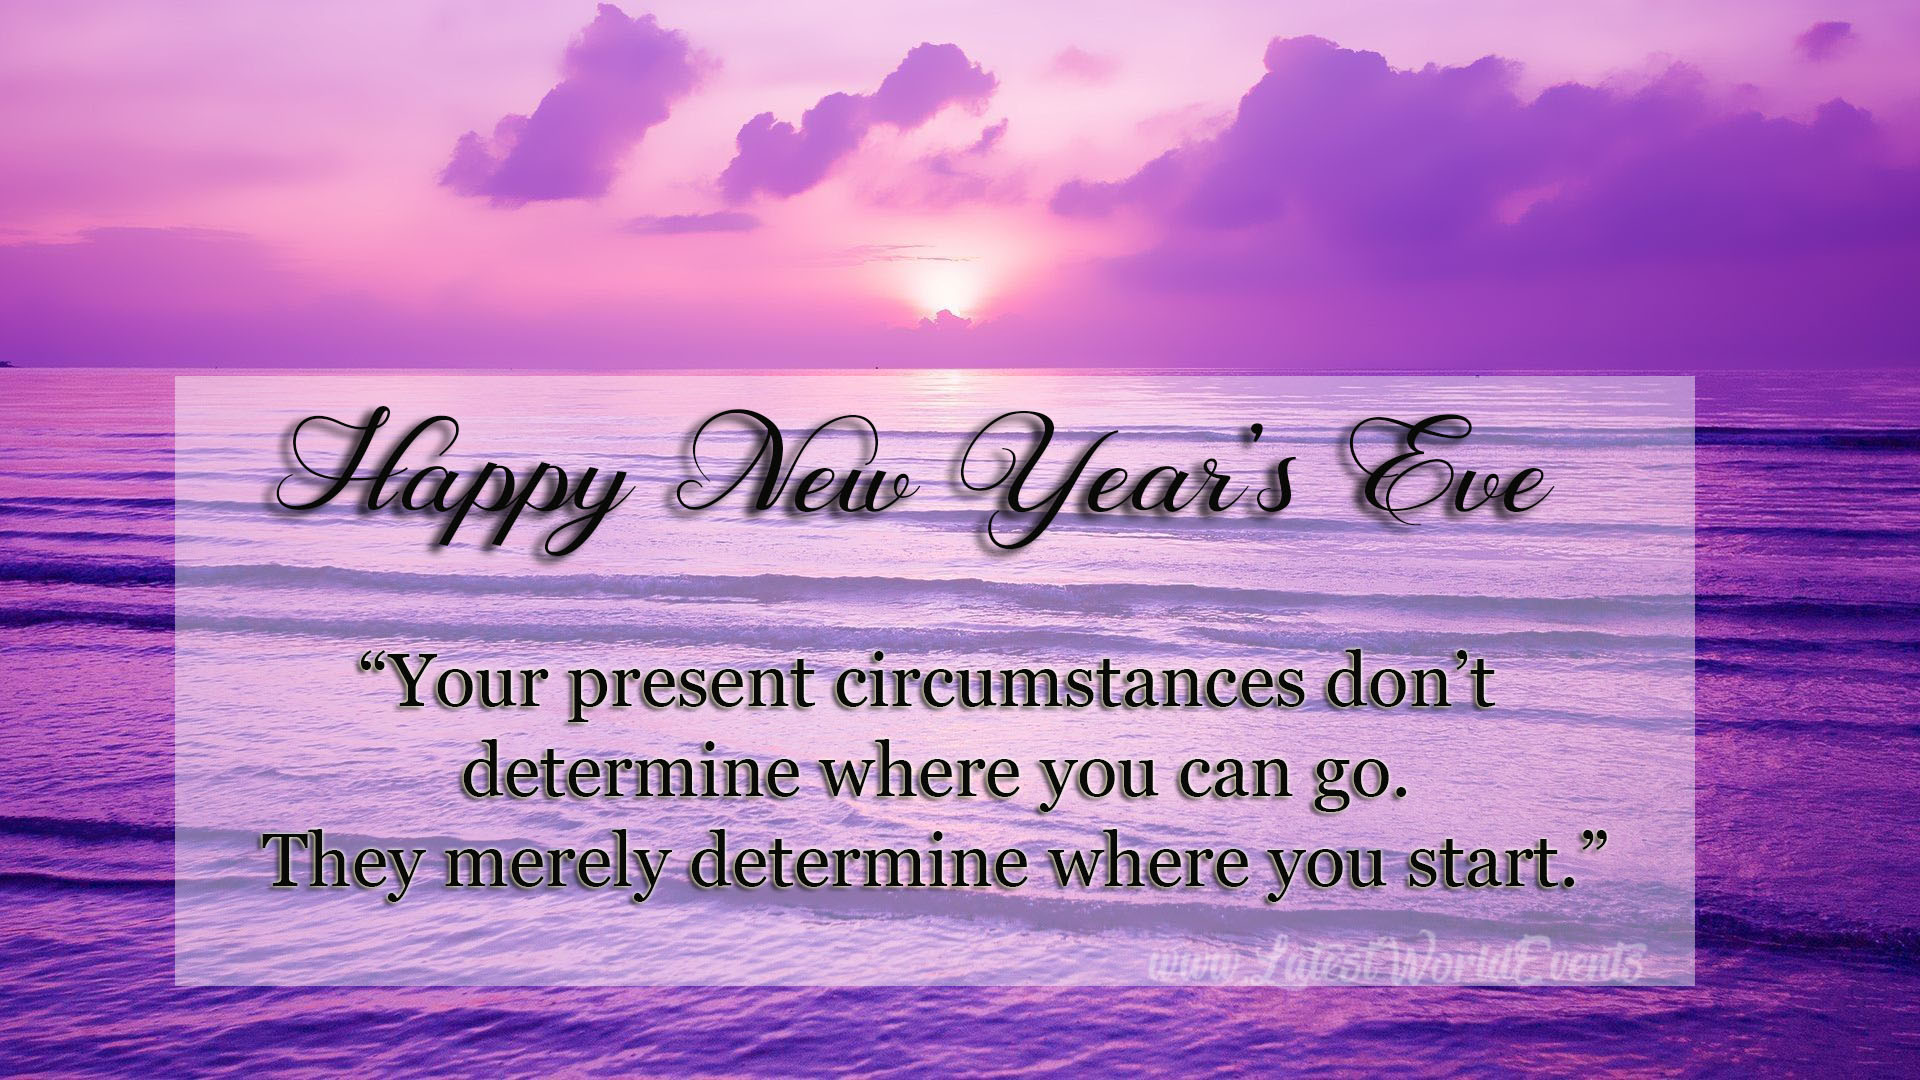 Happy-new-year's-eve-cards-wishes